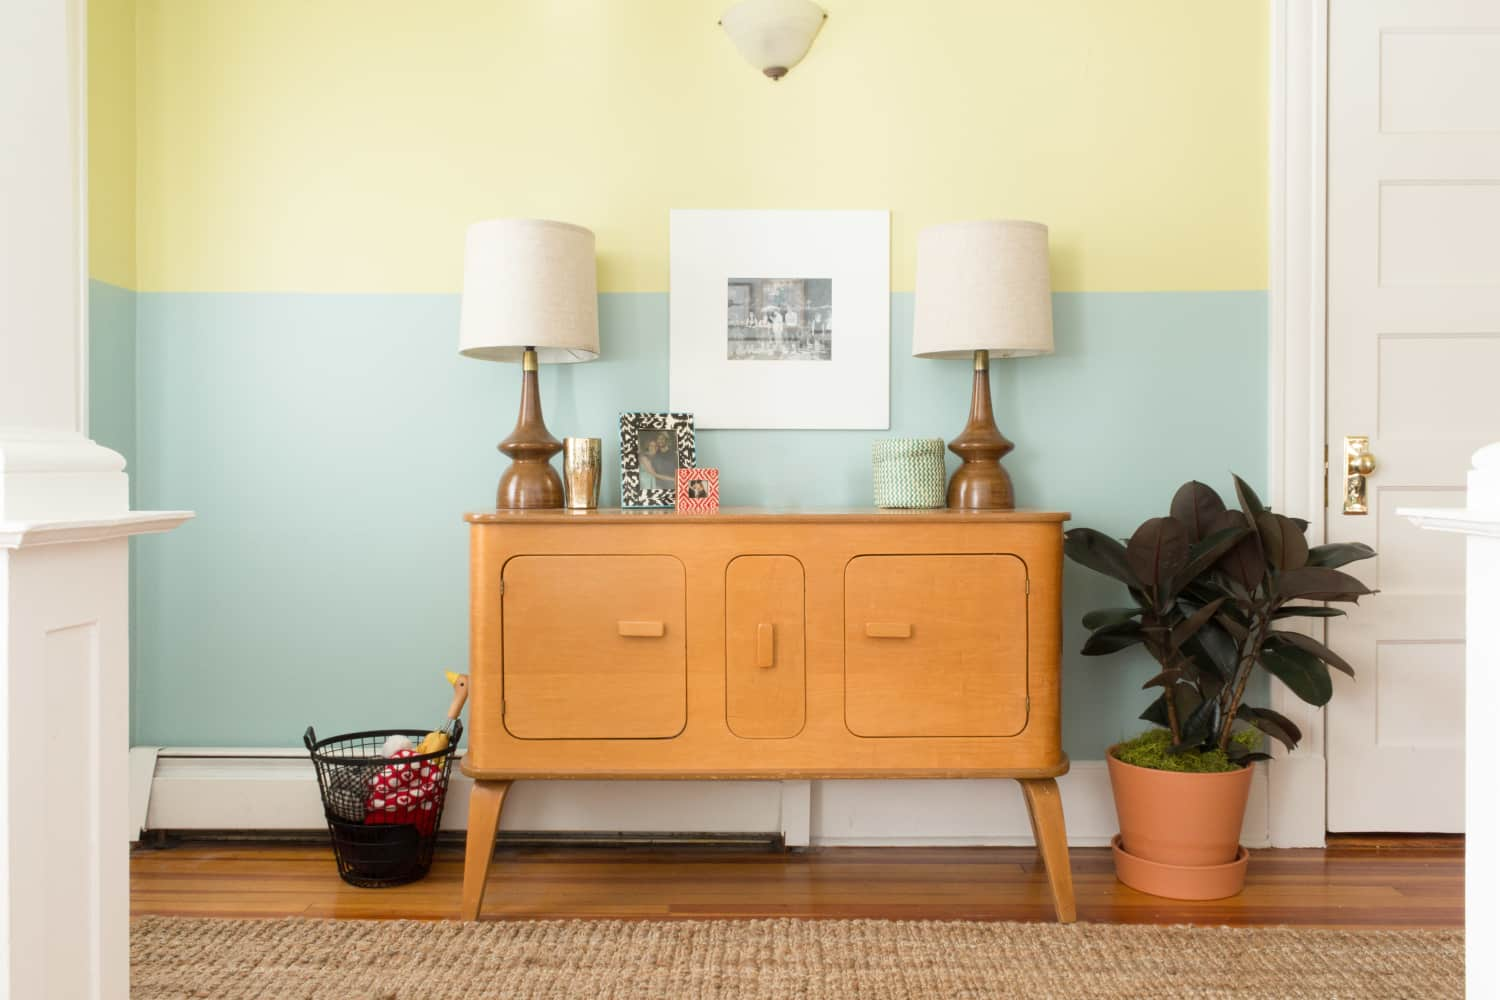 3 Things Super Organized People Do at Home that You Don't